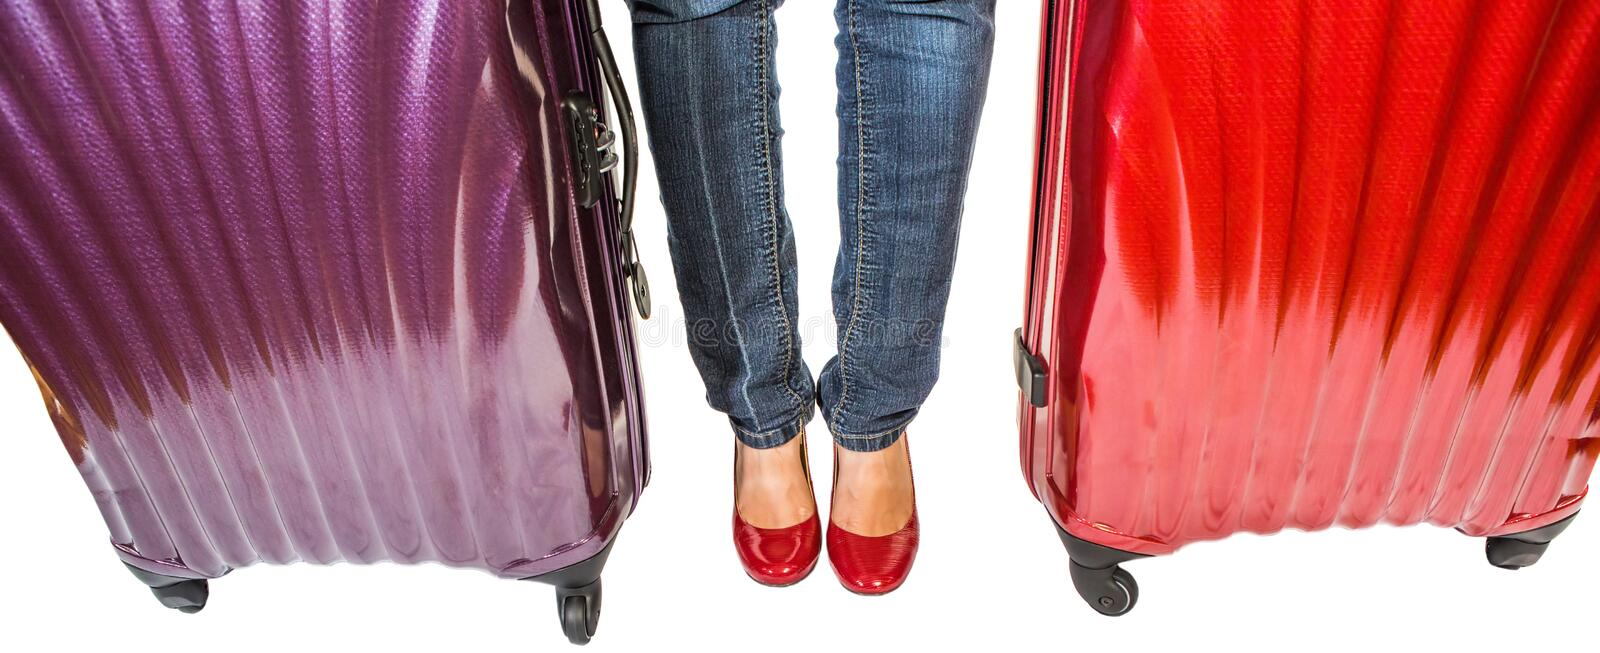 Female and Luggages III royalty free stock photo